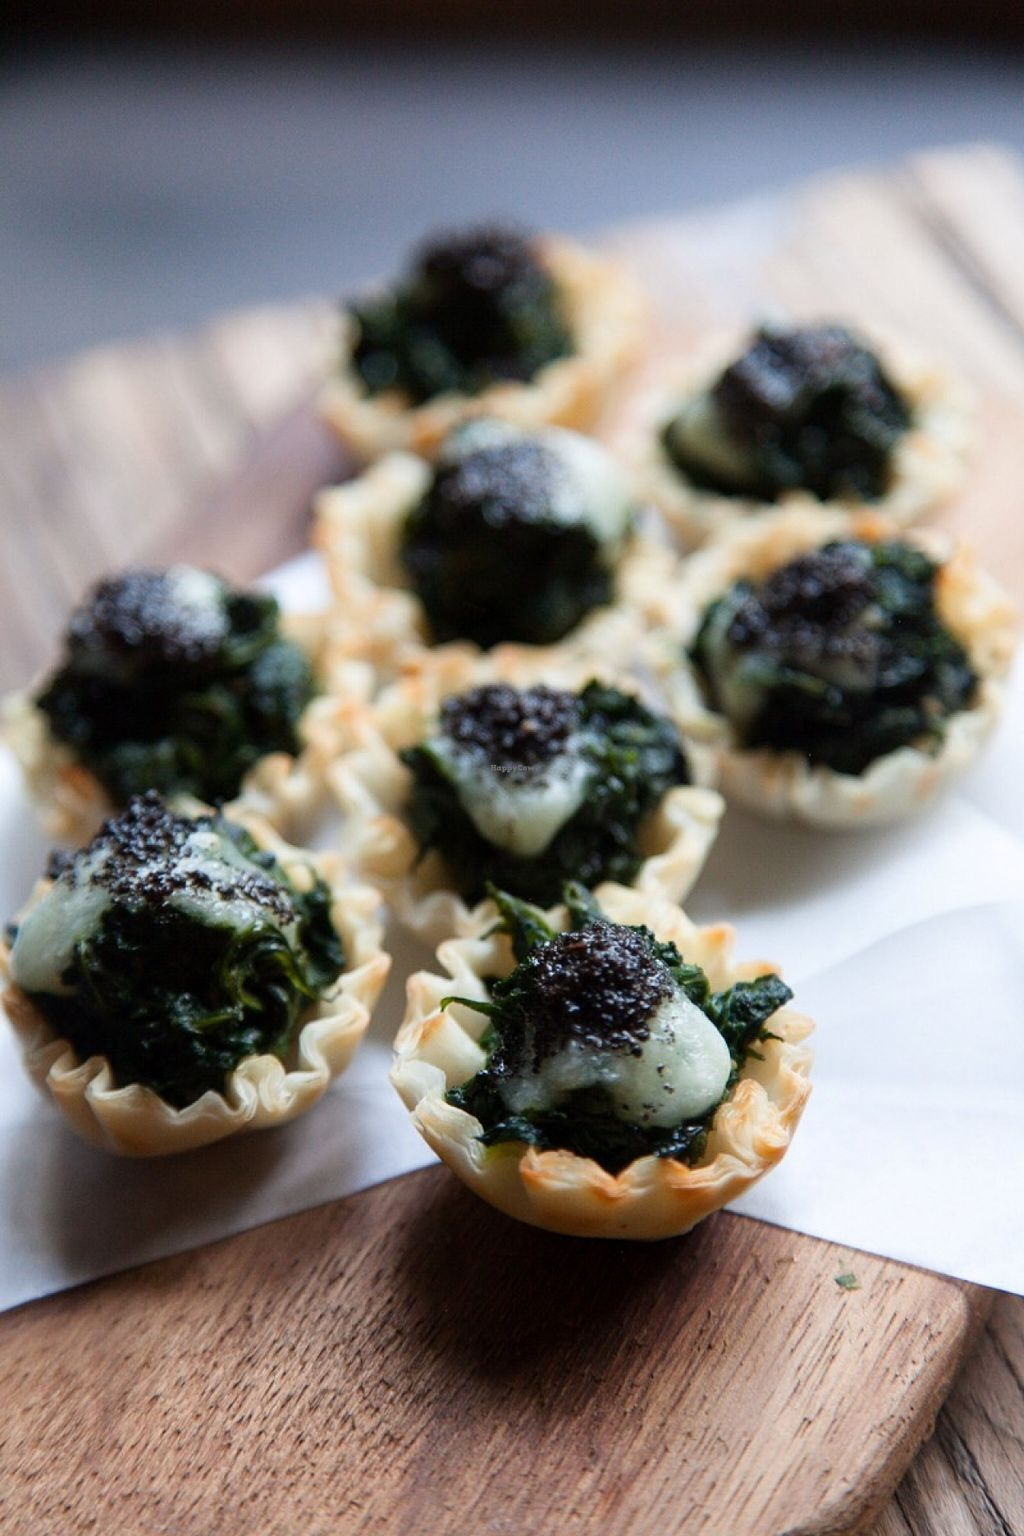 """Photo of Topiary  by <a href=""""/members/profile/ellenhyh"""">ellenhyh</a> <br/>Filo Tart with Truffle  <br/> November 17, 2015  - <a href='/contact/abuse/image/64223/125228'>Report</a>"""